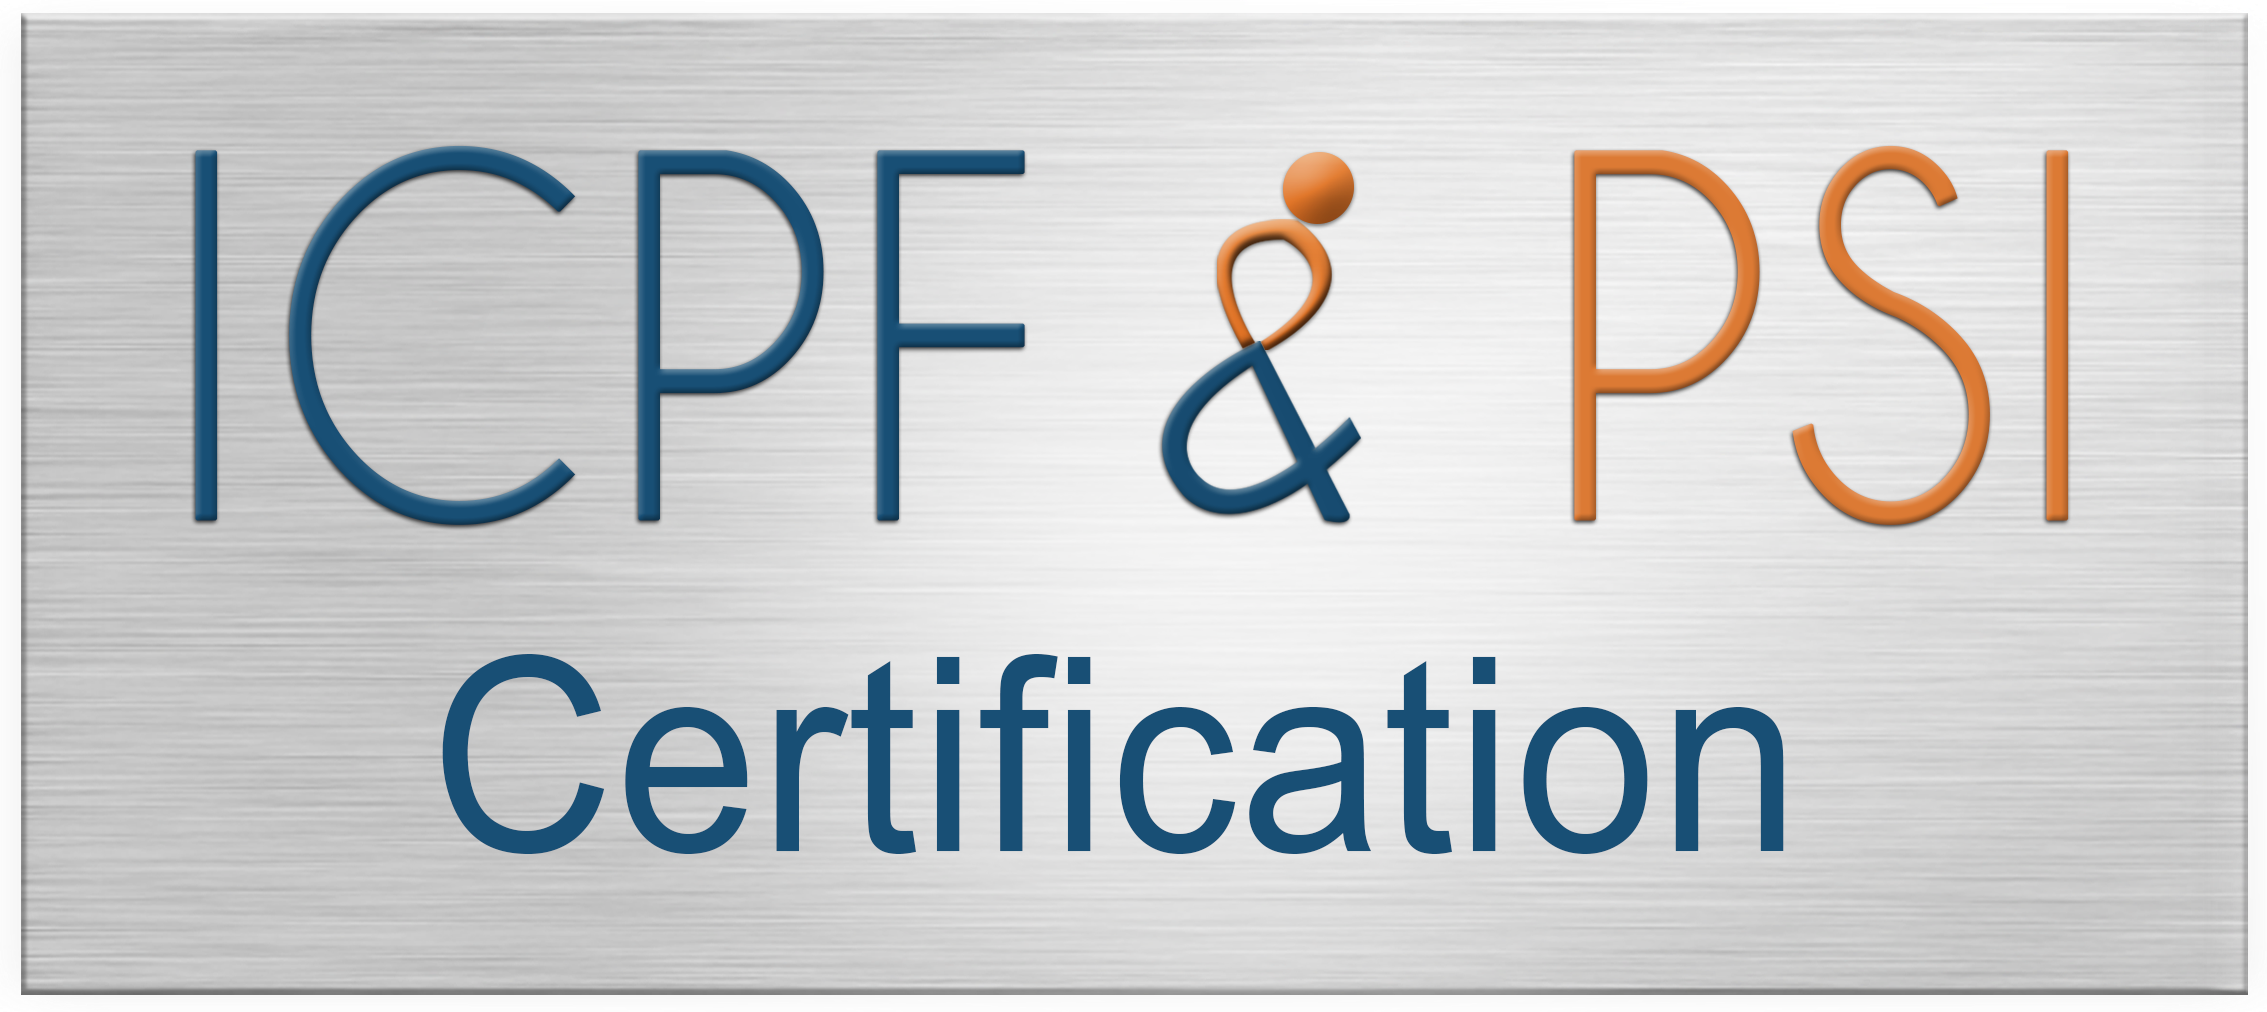 icpf psi logo court - Formations bureautique - Word, Excel, Windows, powerpoint, outlook, appels d'offres, certificat, orthographe